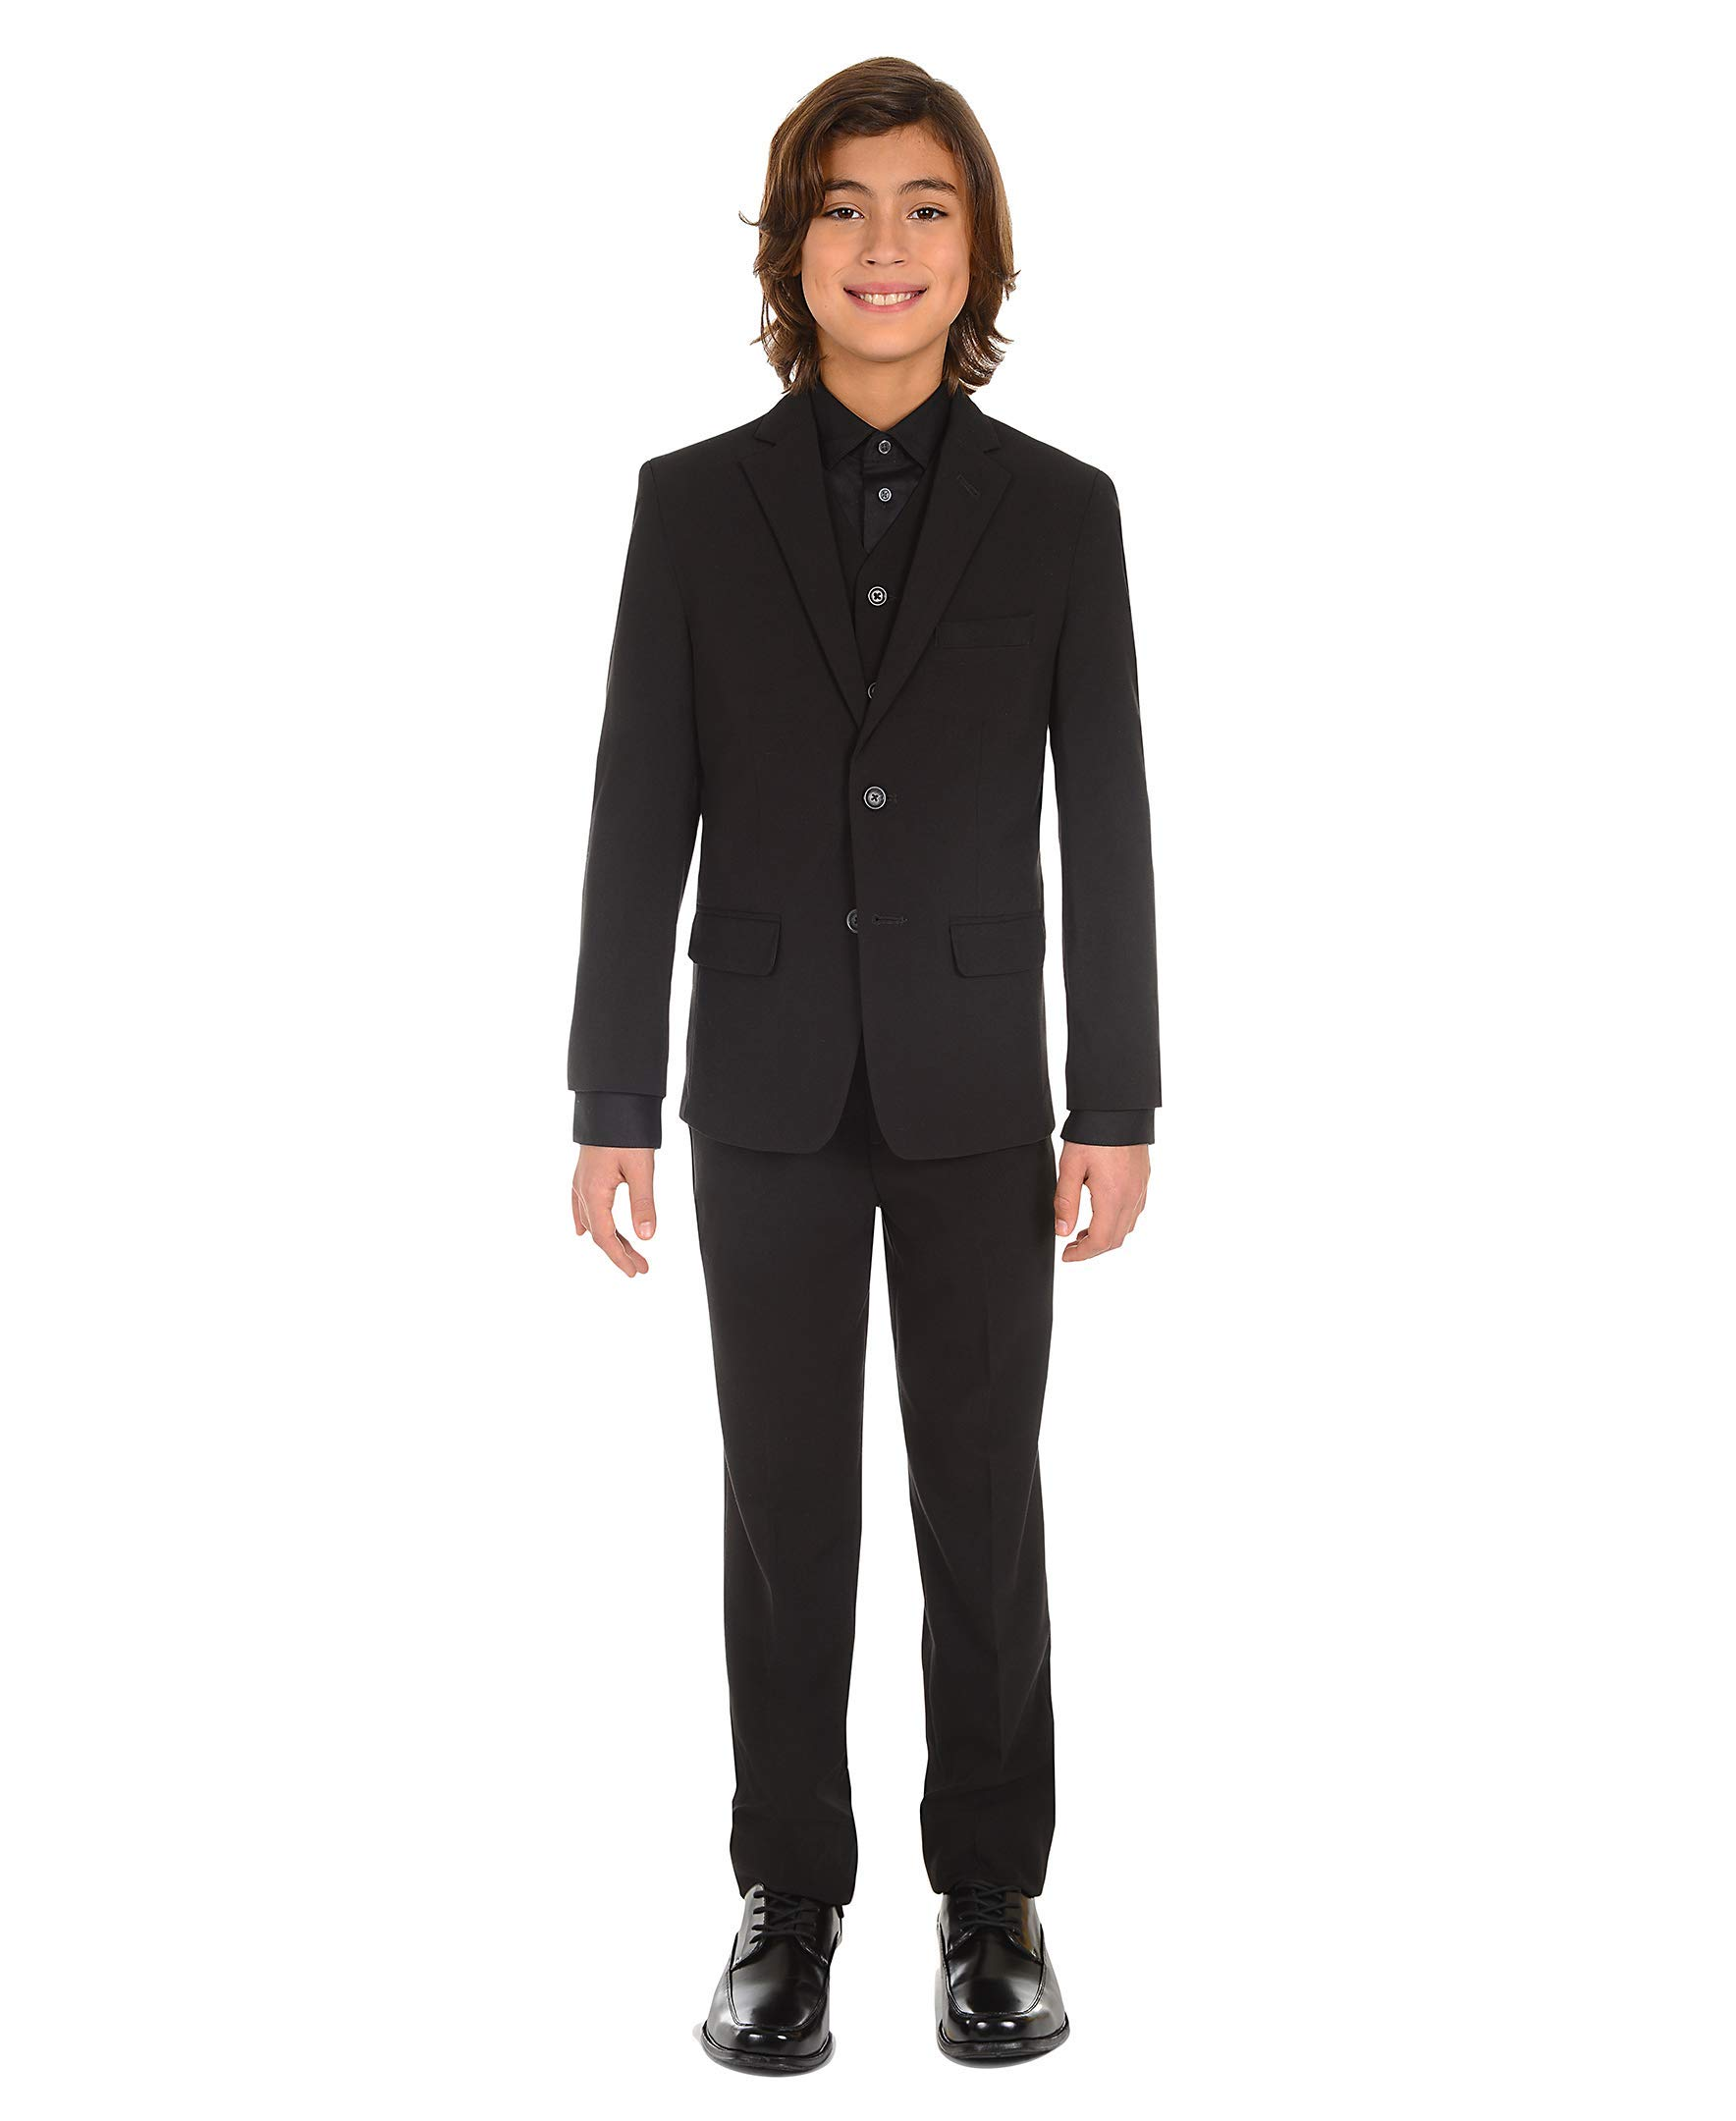 Calvin Klein Dress Up Big Boys' Bi-Stretch Vest, Black, Small by Calvin Klein (Image #5)